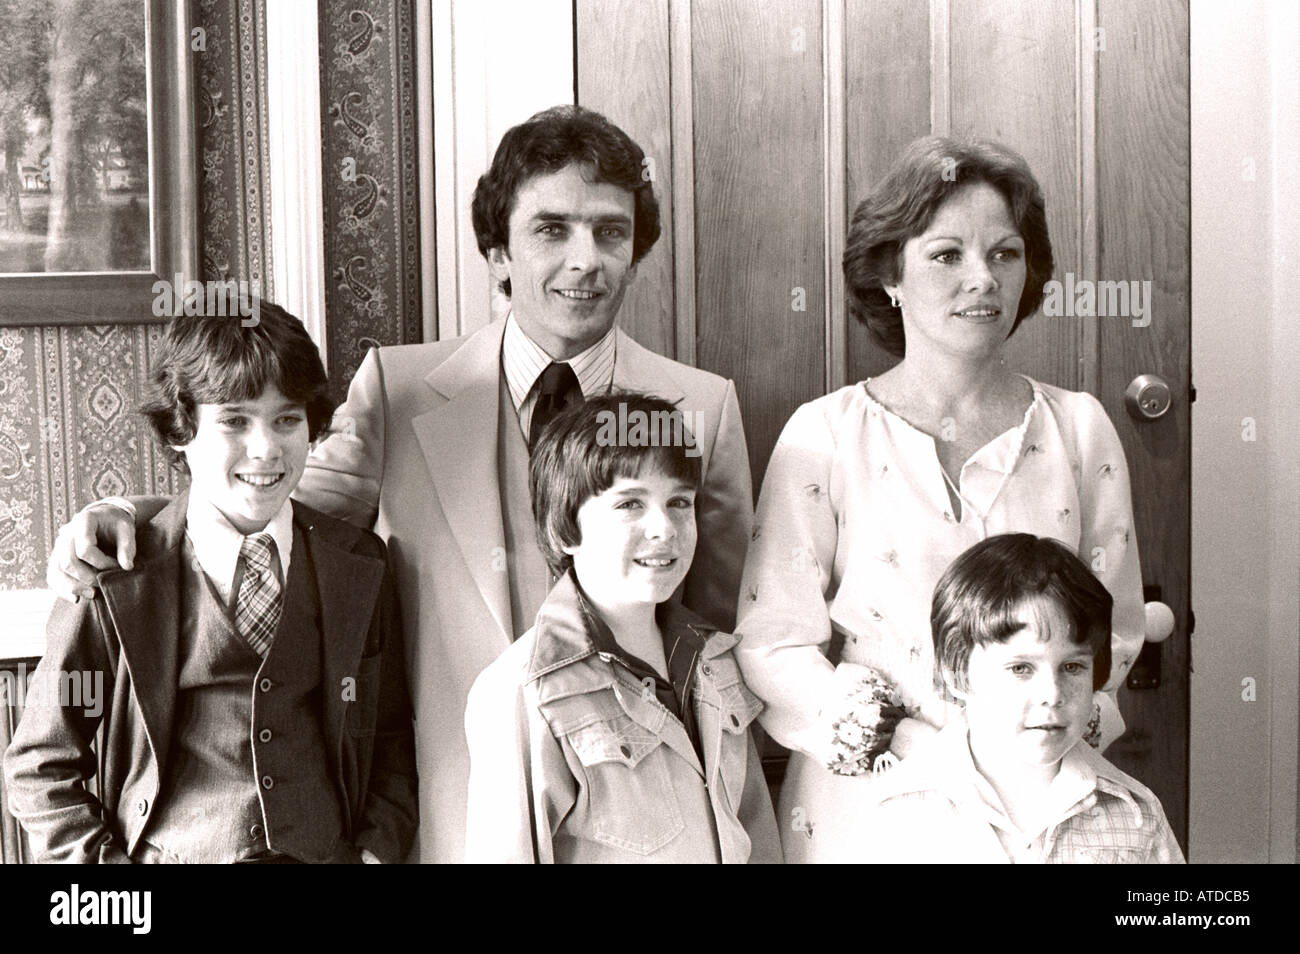 USA 1970's Young American Family Portrait at Wedding Celebration 'Black and White' 'irish origin' Parents Children - Stock Image